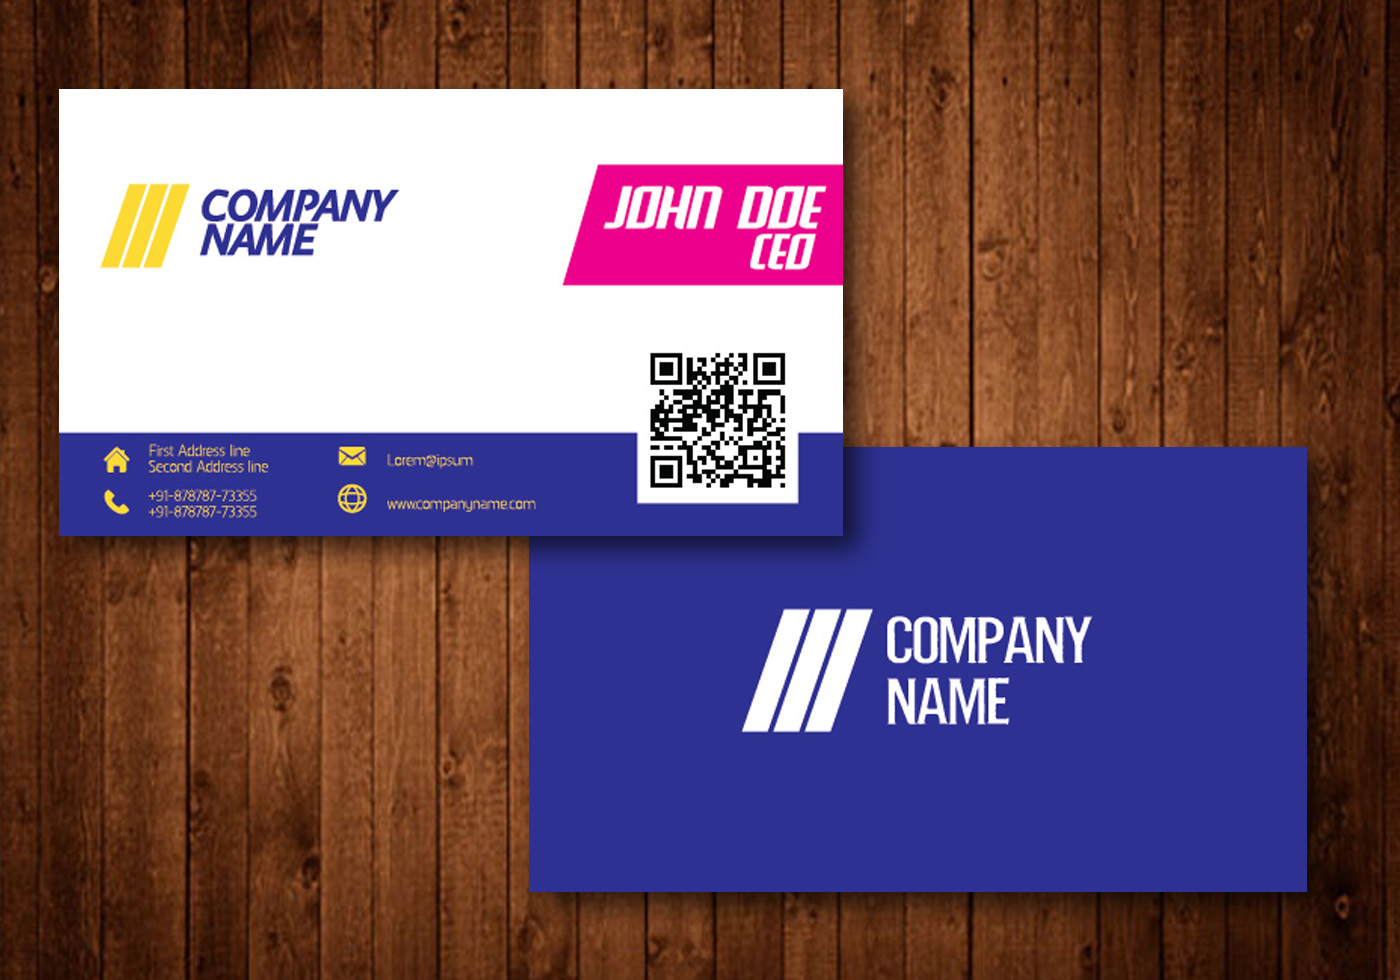 Bright Creative Business Card - Download Free Vector Art, Stock ...